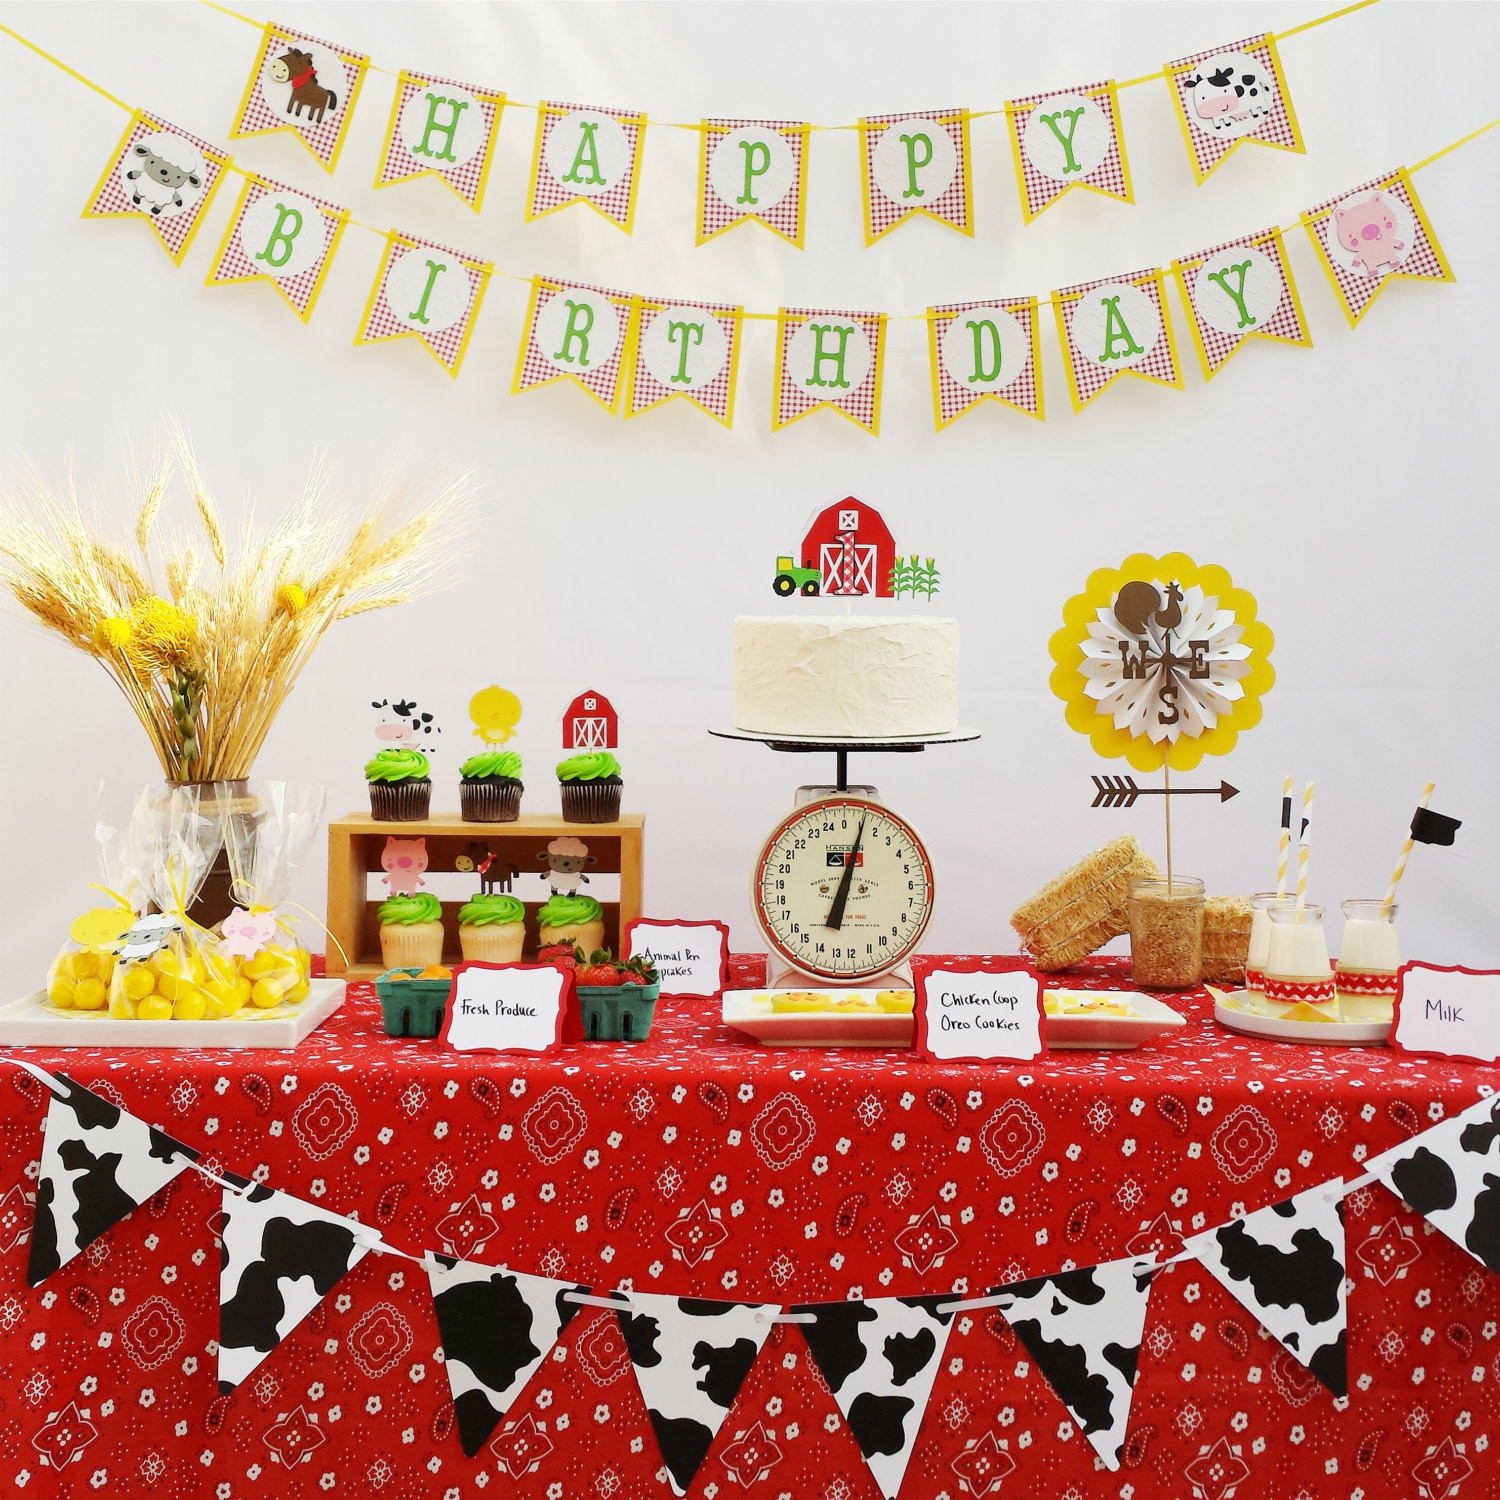 Best ideas about Farm Birthday Party Supplies . Save or Pin Farm Birthday Party Decorations Package Farm Animals Garland Now.